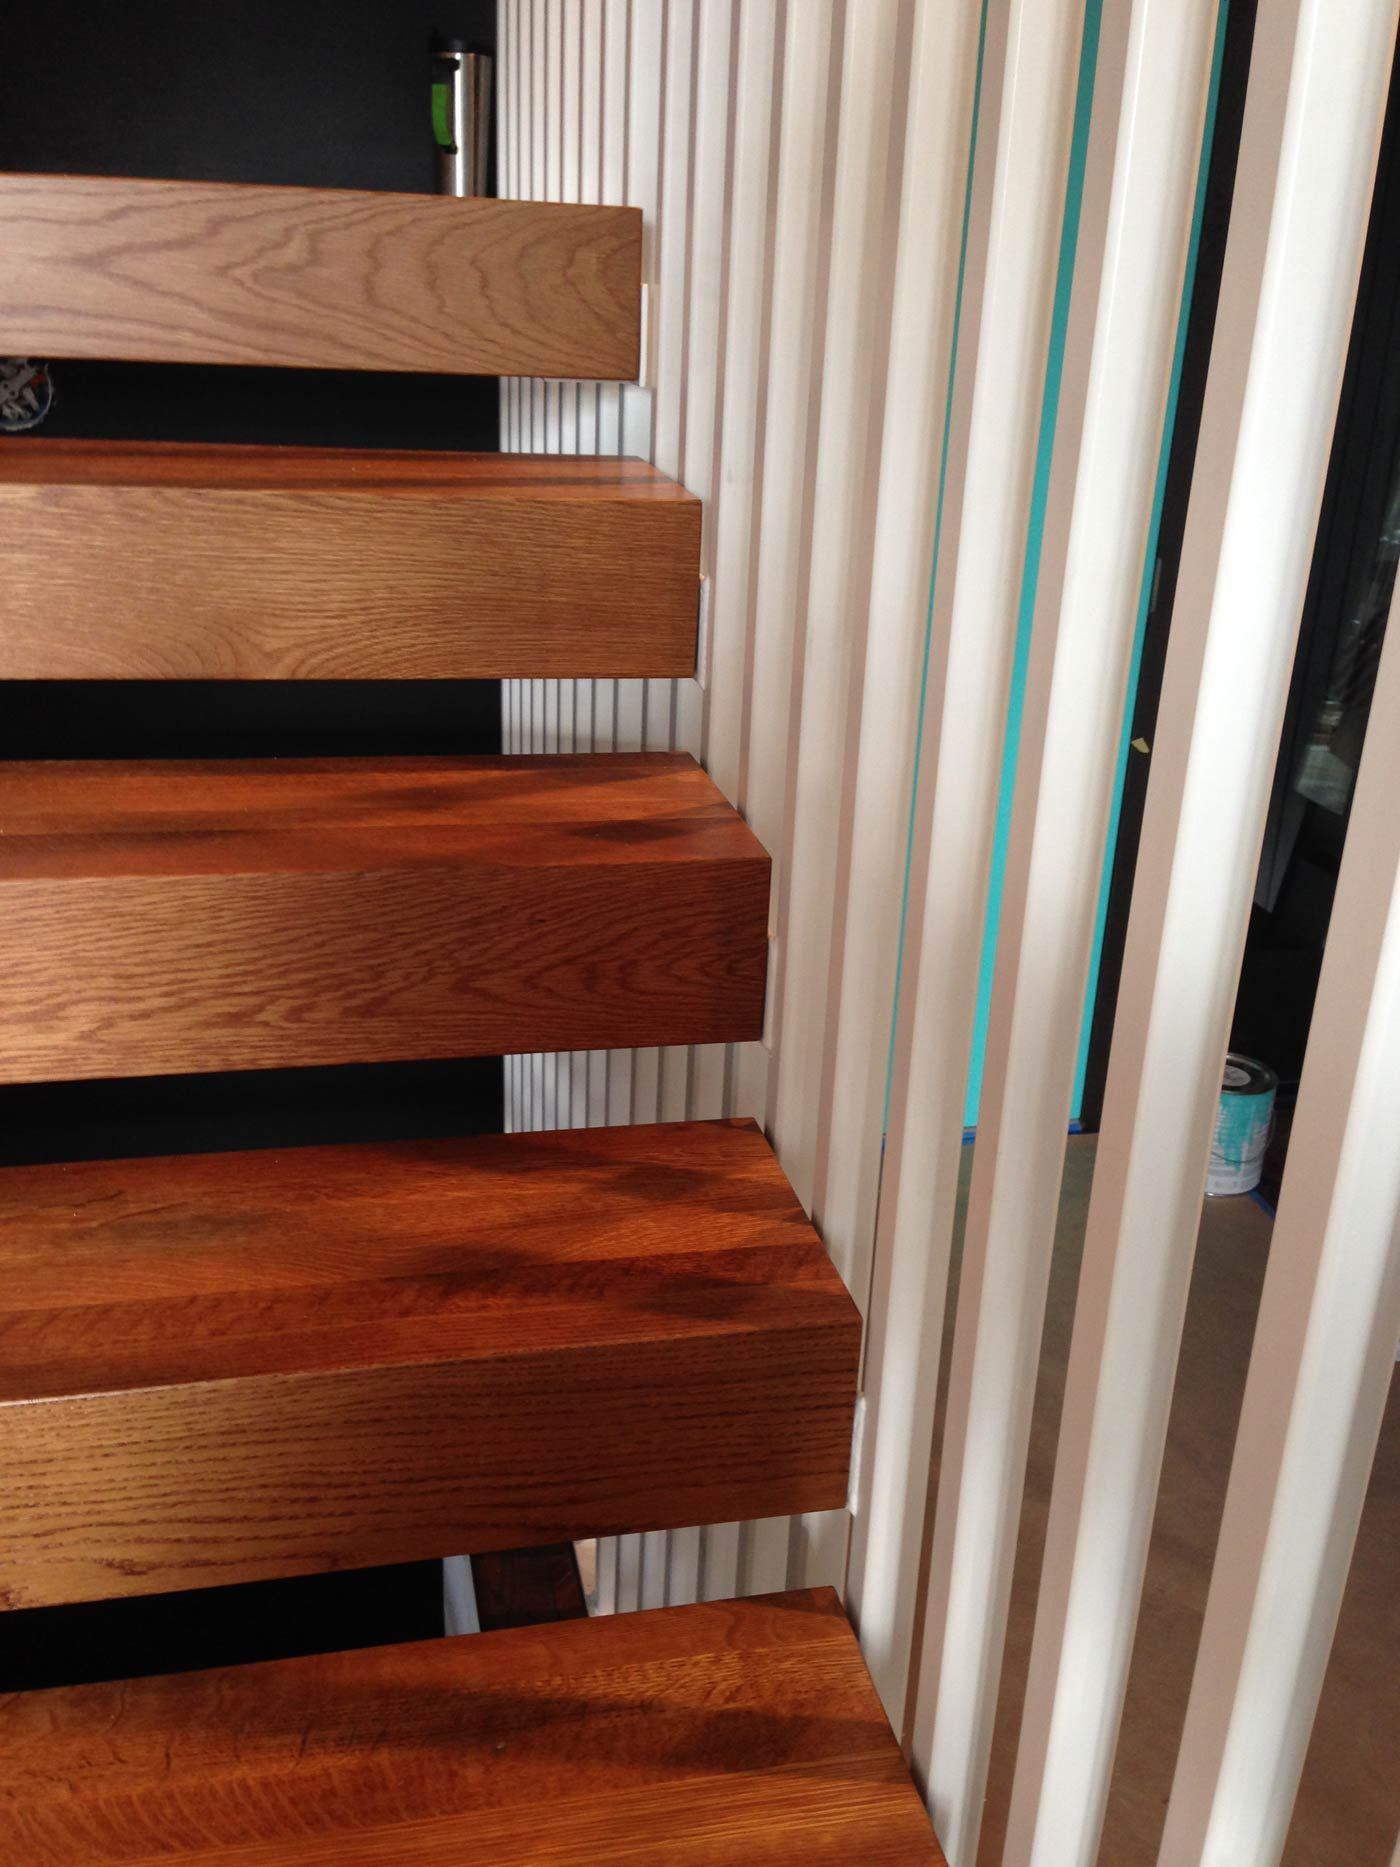 Oak Stair Trends Tie In With One Inch Square Tube Steel Verticals In New  Staircase Design | Hammer U0026 Hand